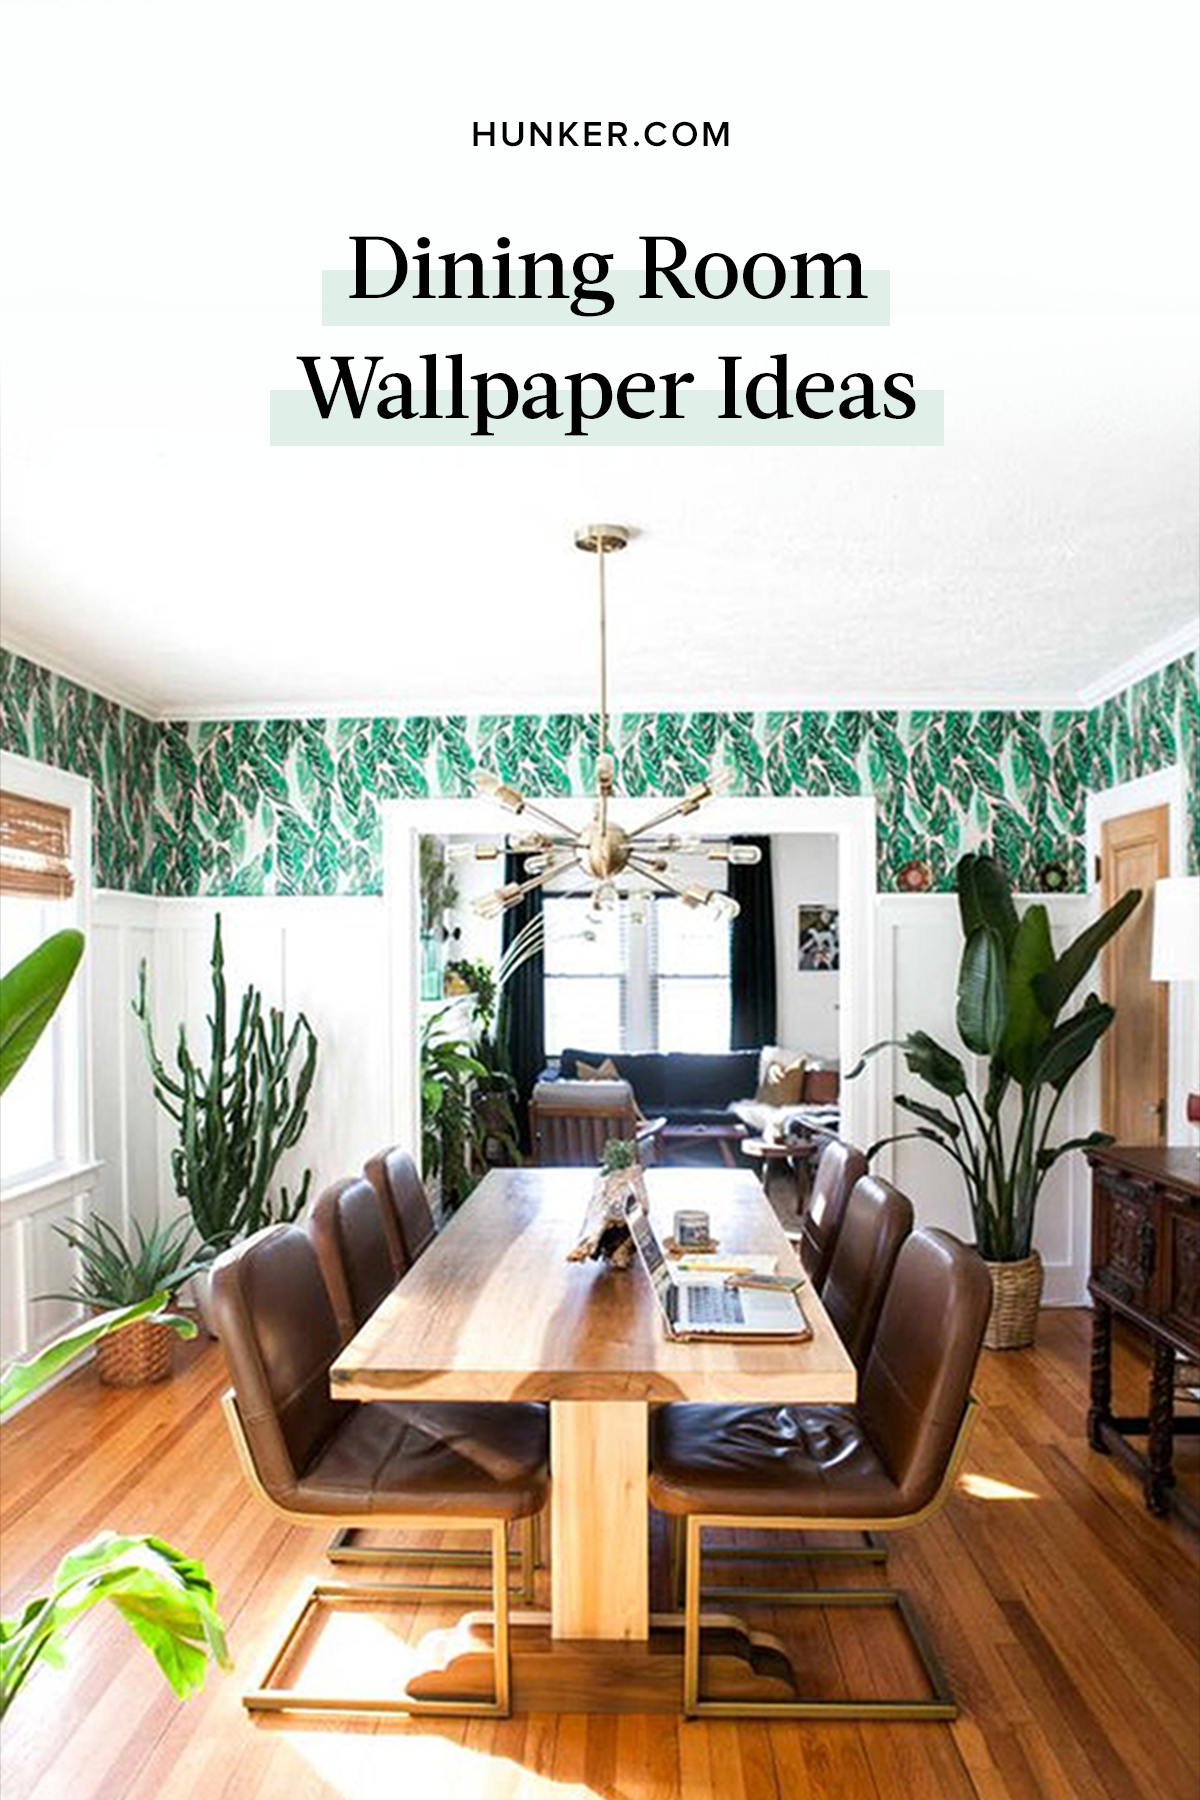 Looking For A Dining Room Wall Idea We Have One Word For